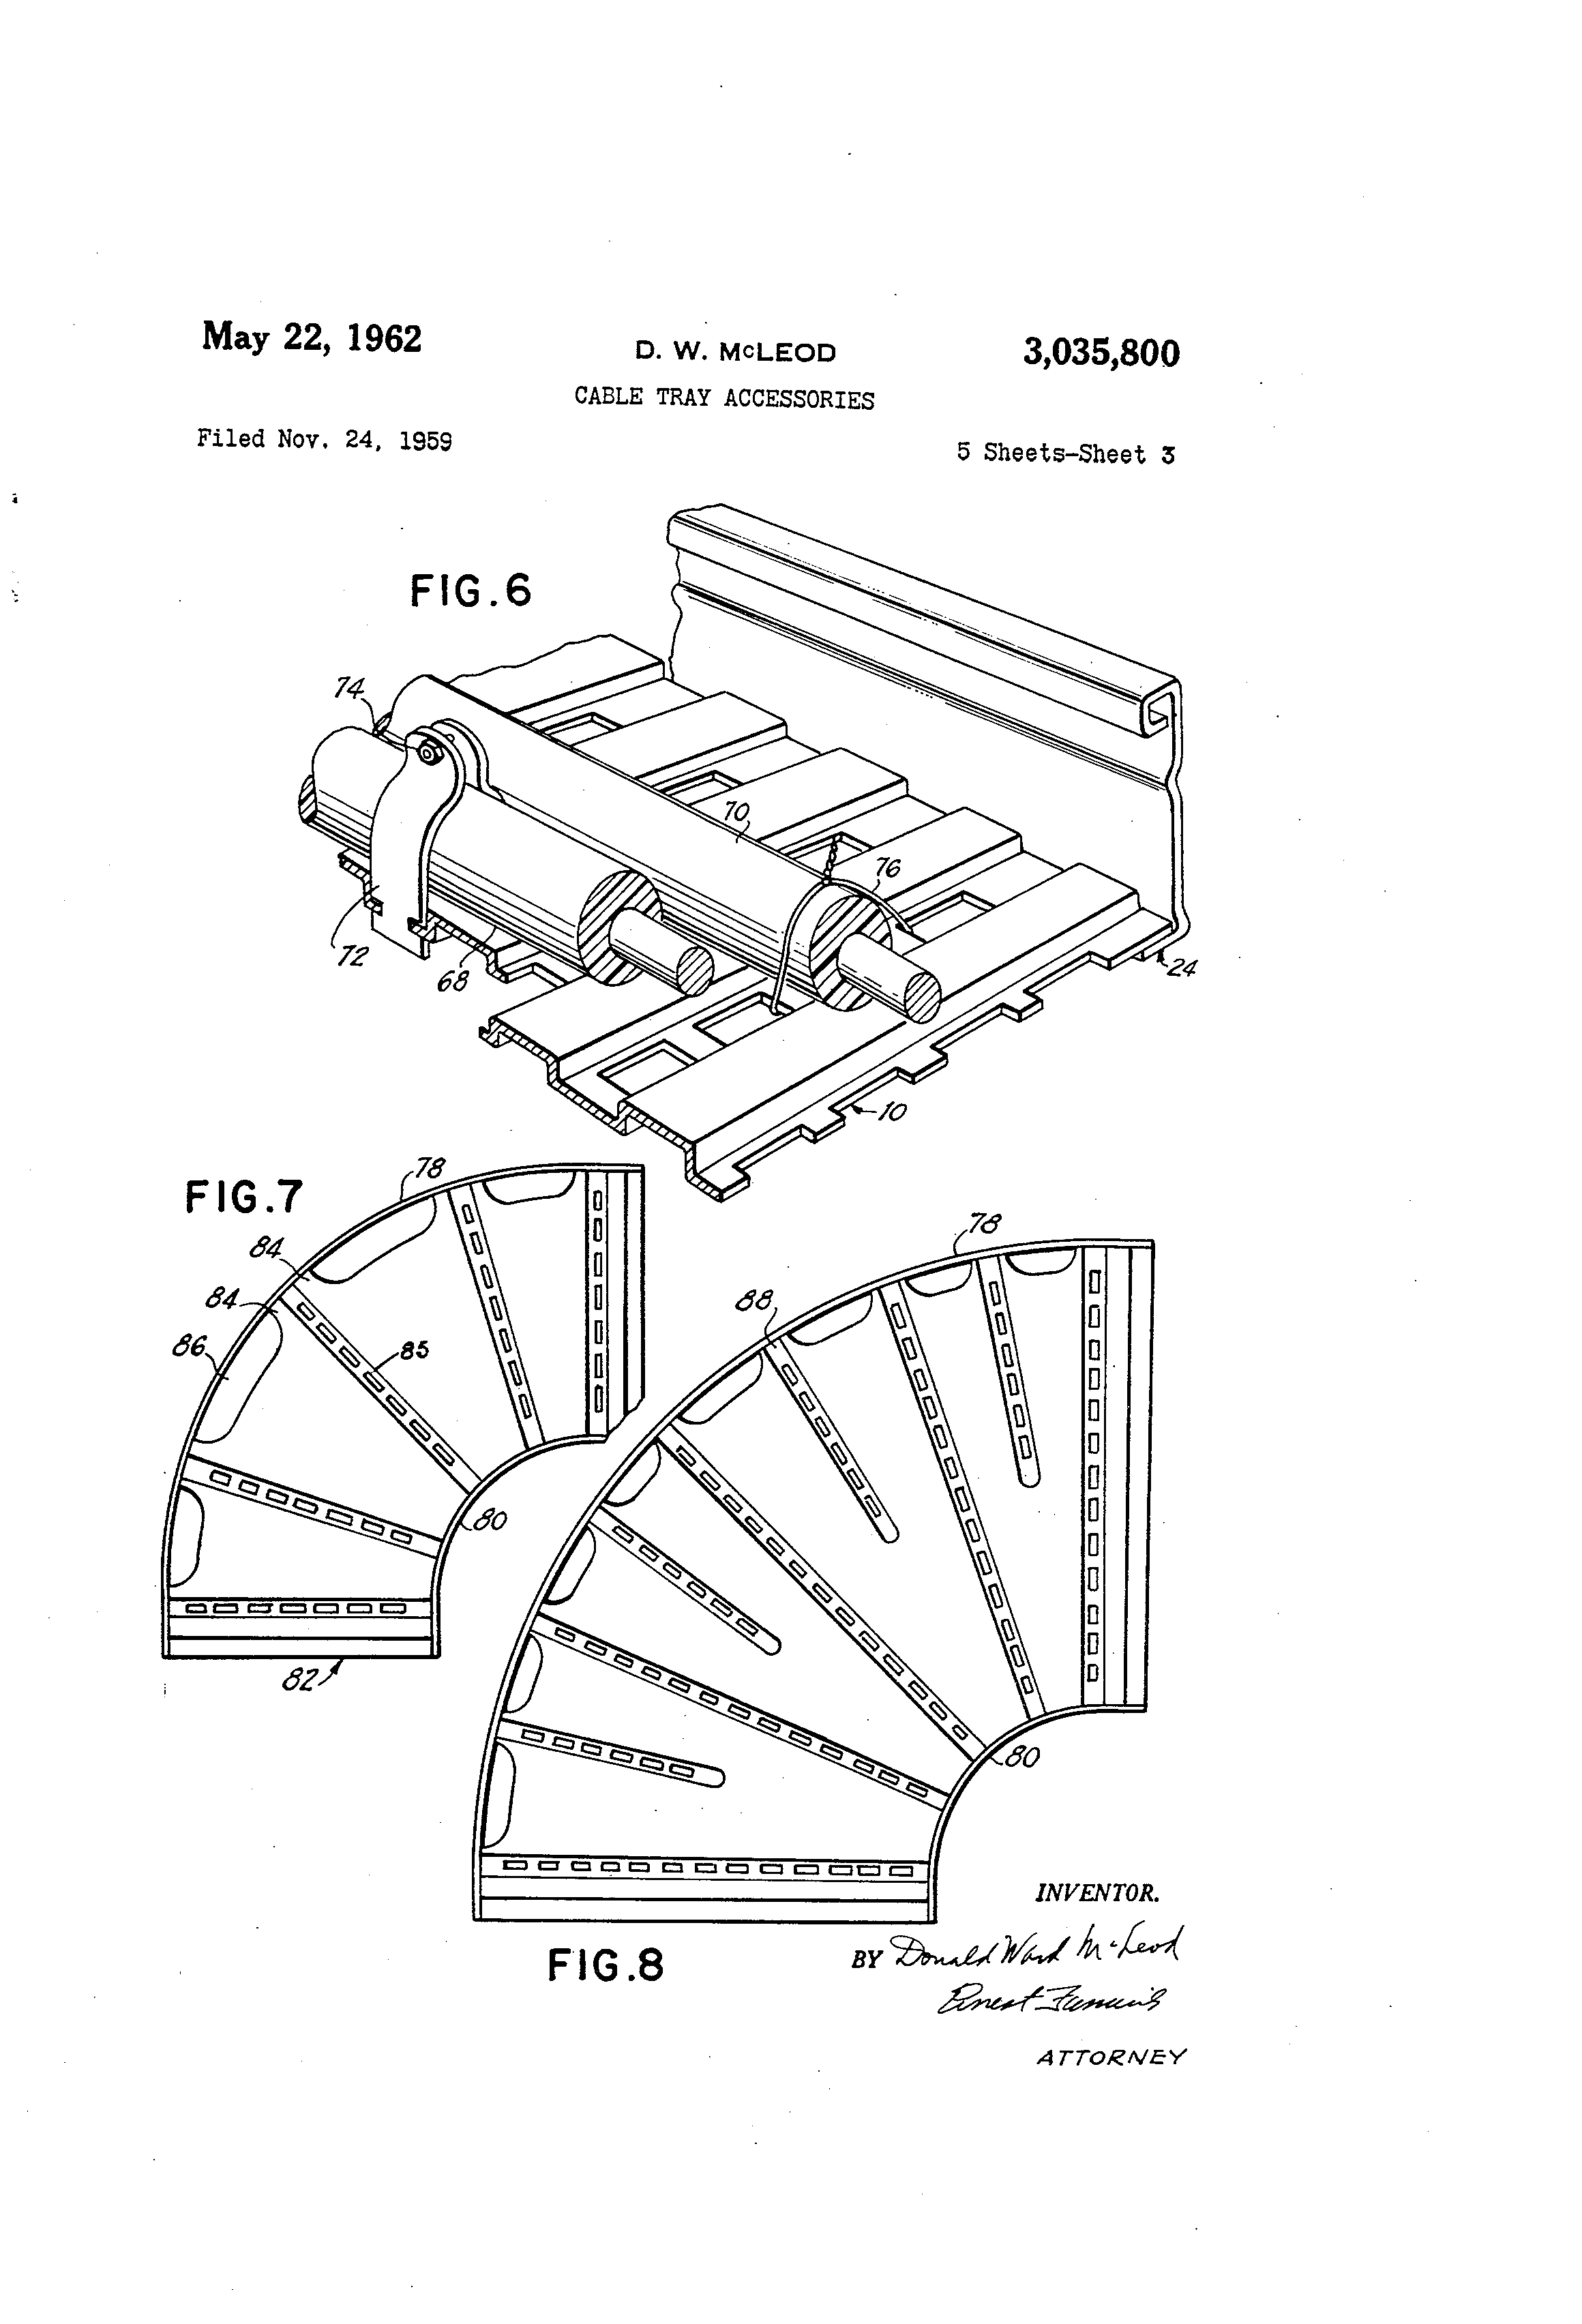 patent us3035800 - cable tray accessories